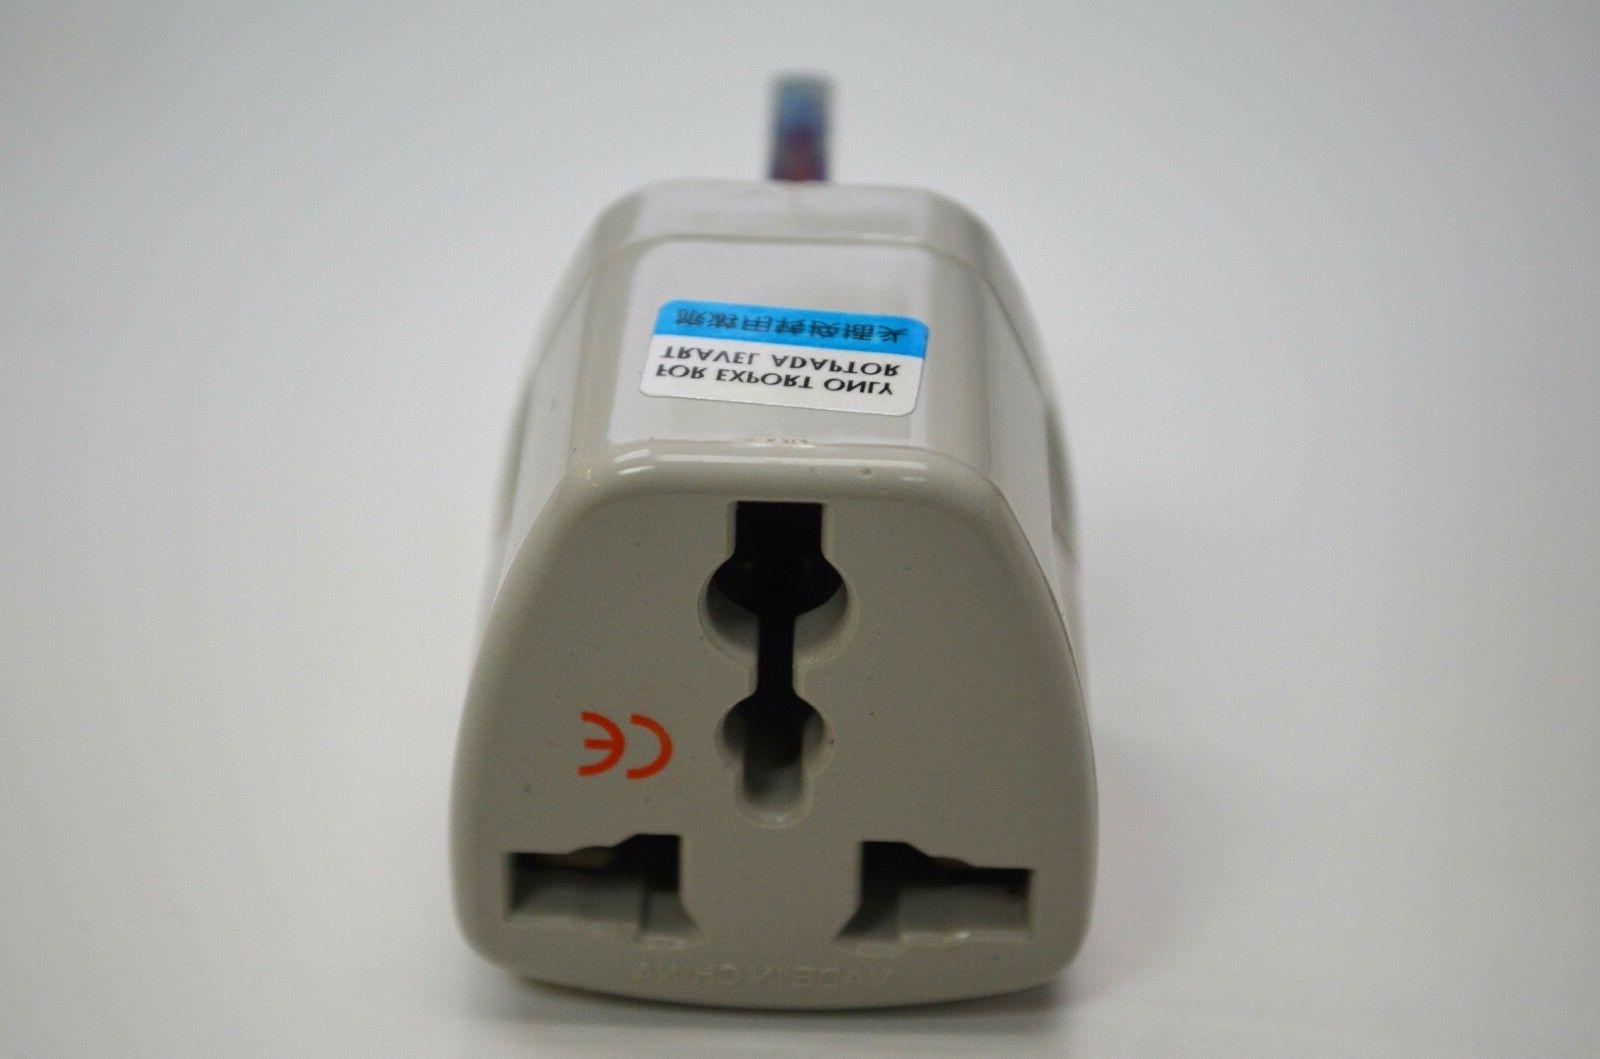 Travel Universal Plug Type G for UK, Iraq Pack